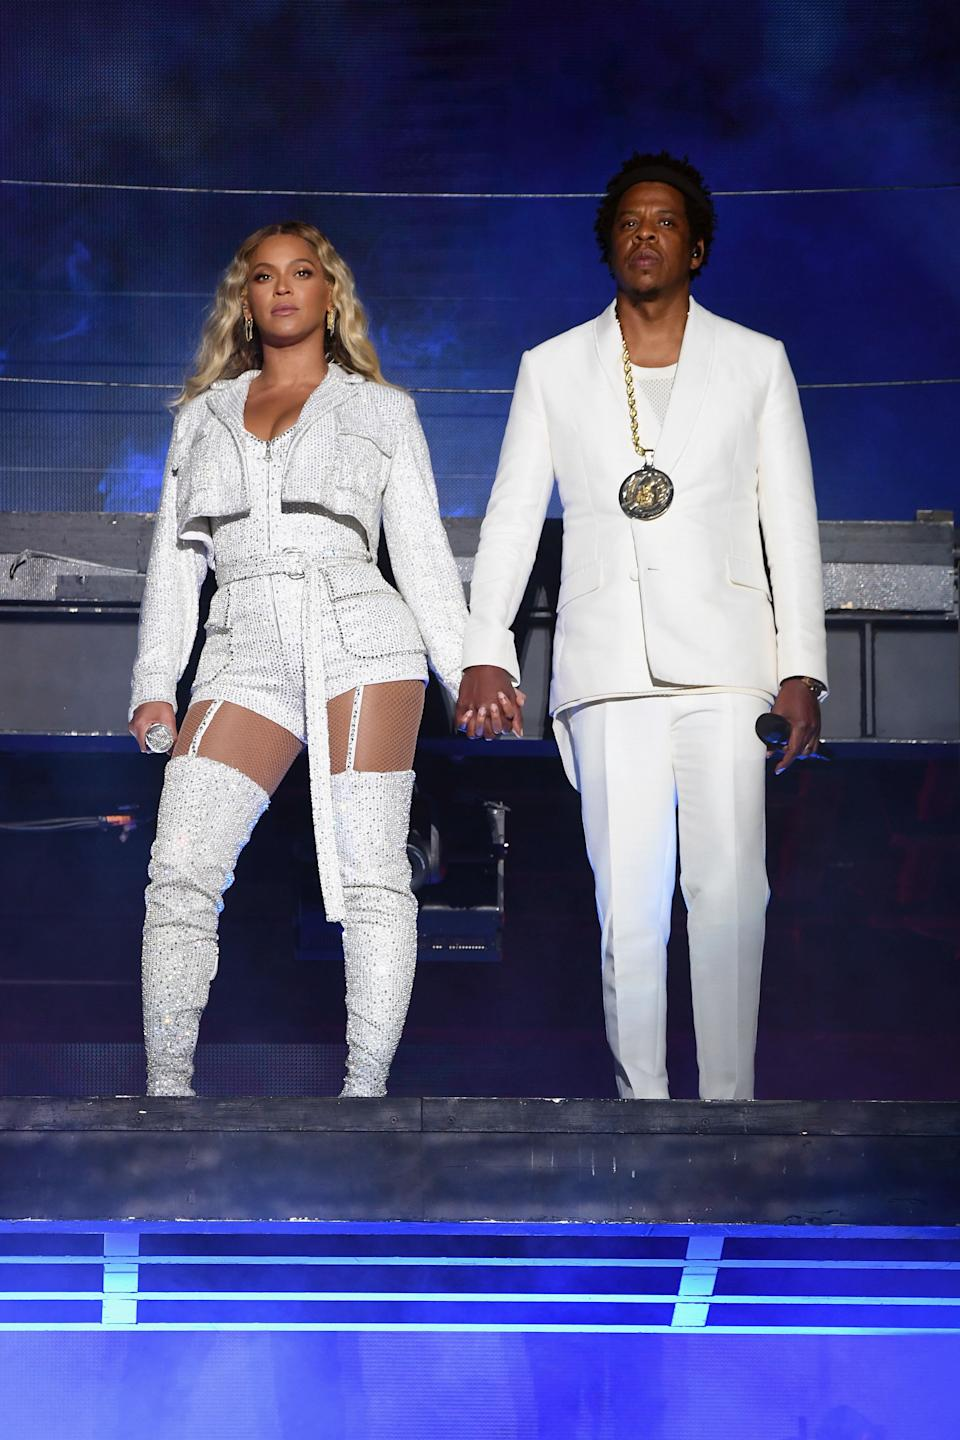 Beyoncé and Jay Z make up one of the most stylish couples around. It makes sense, then, that when they decide to tour together, their show costumes are perfectly coordinated. In this photo, the two stand on stage during a performance in Cleveland in 2018.